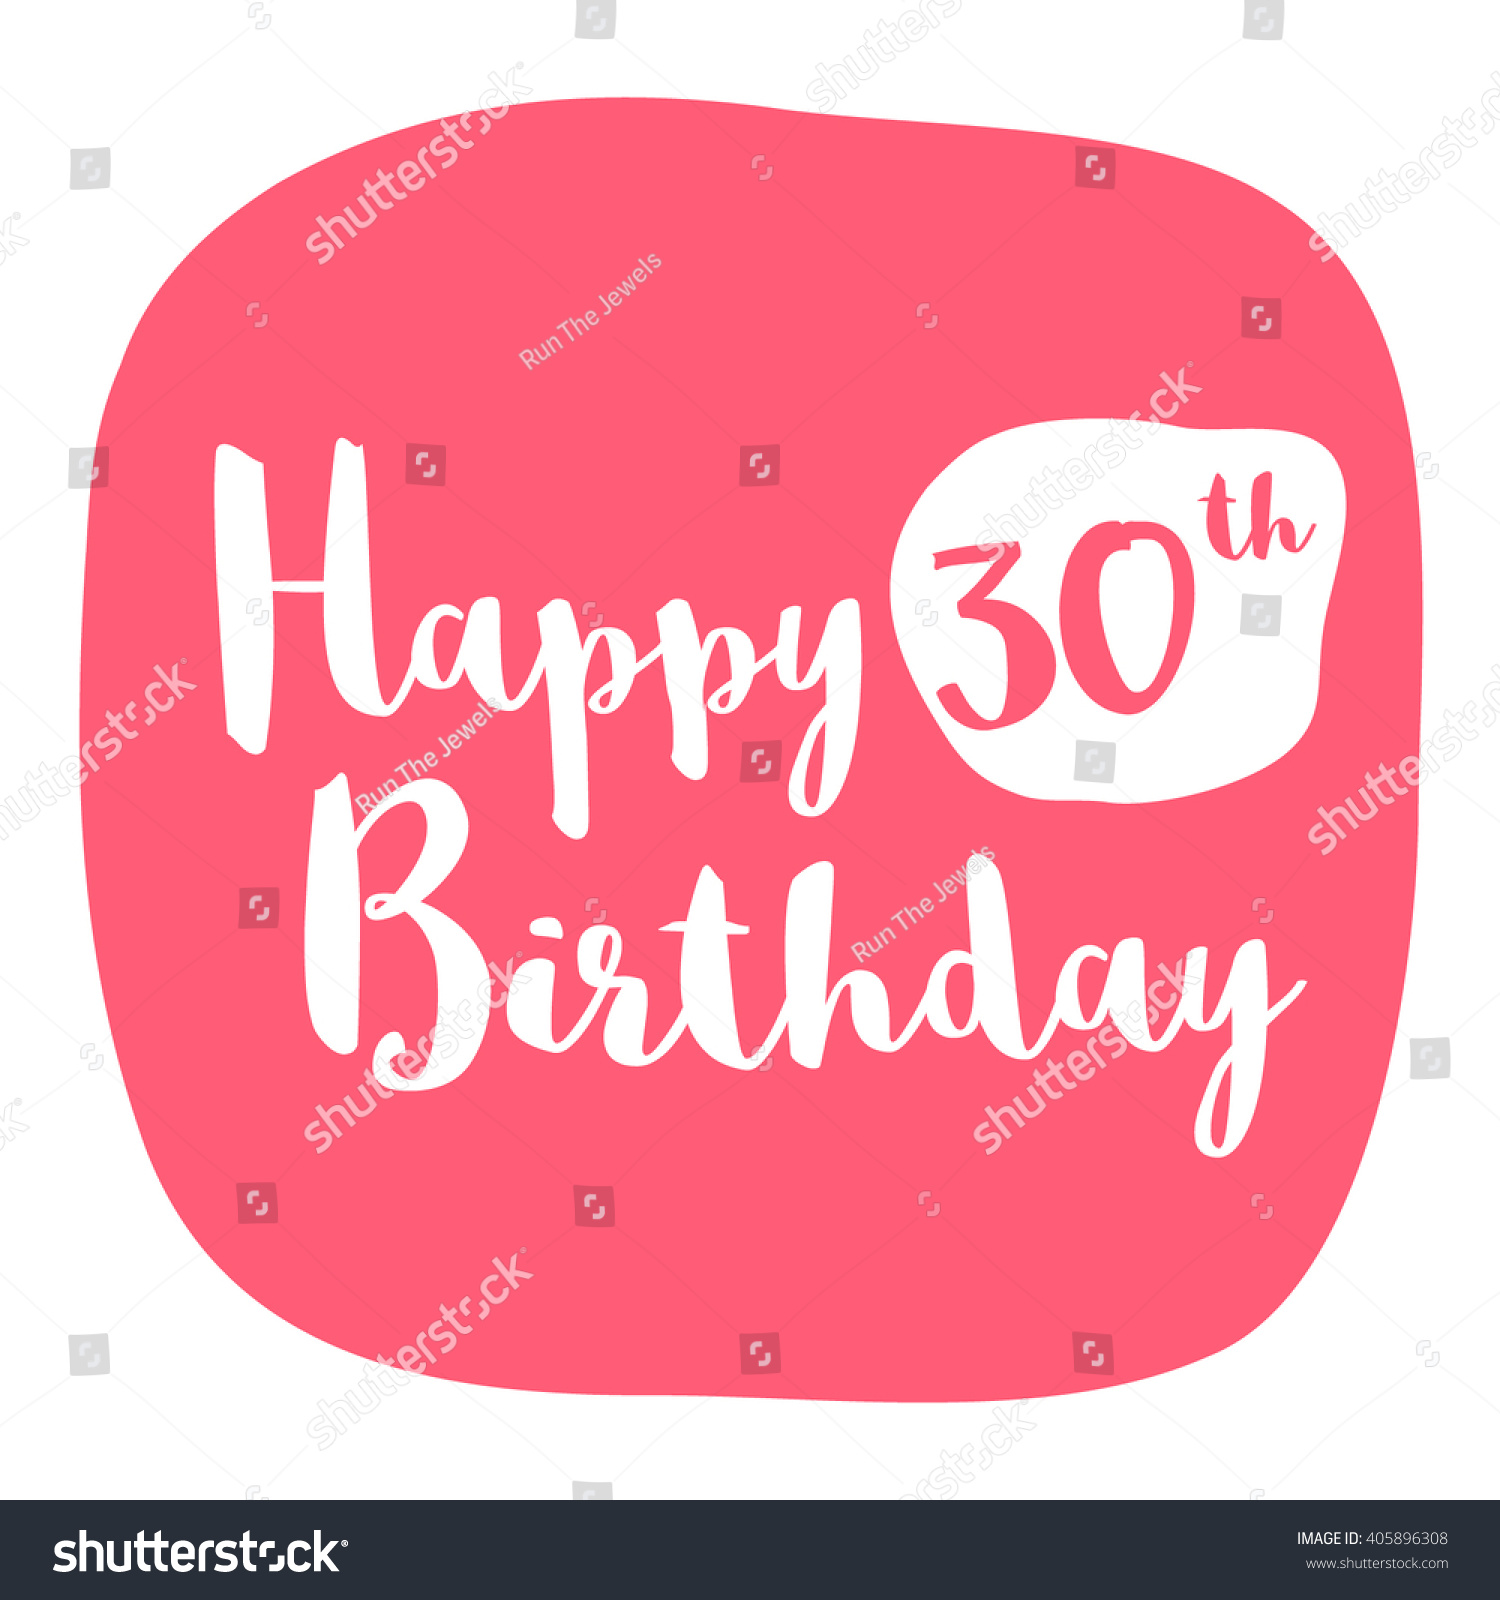 Happy 30th birthday card brush lettering stock vector 405896308 happy 30th birthday card brush lettering vector design bookmarktalkfo Choice Image